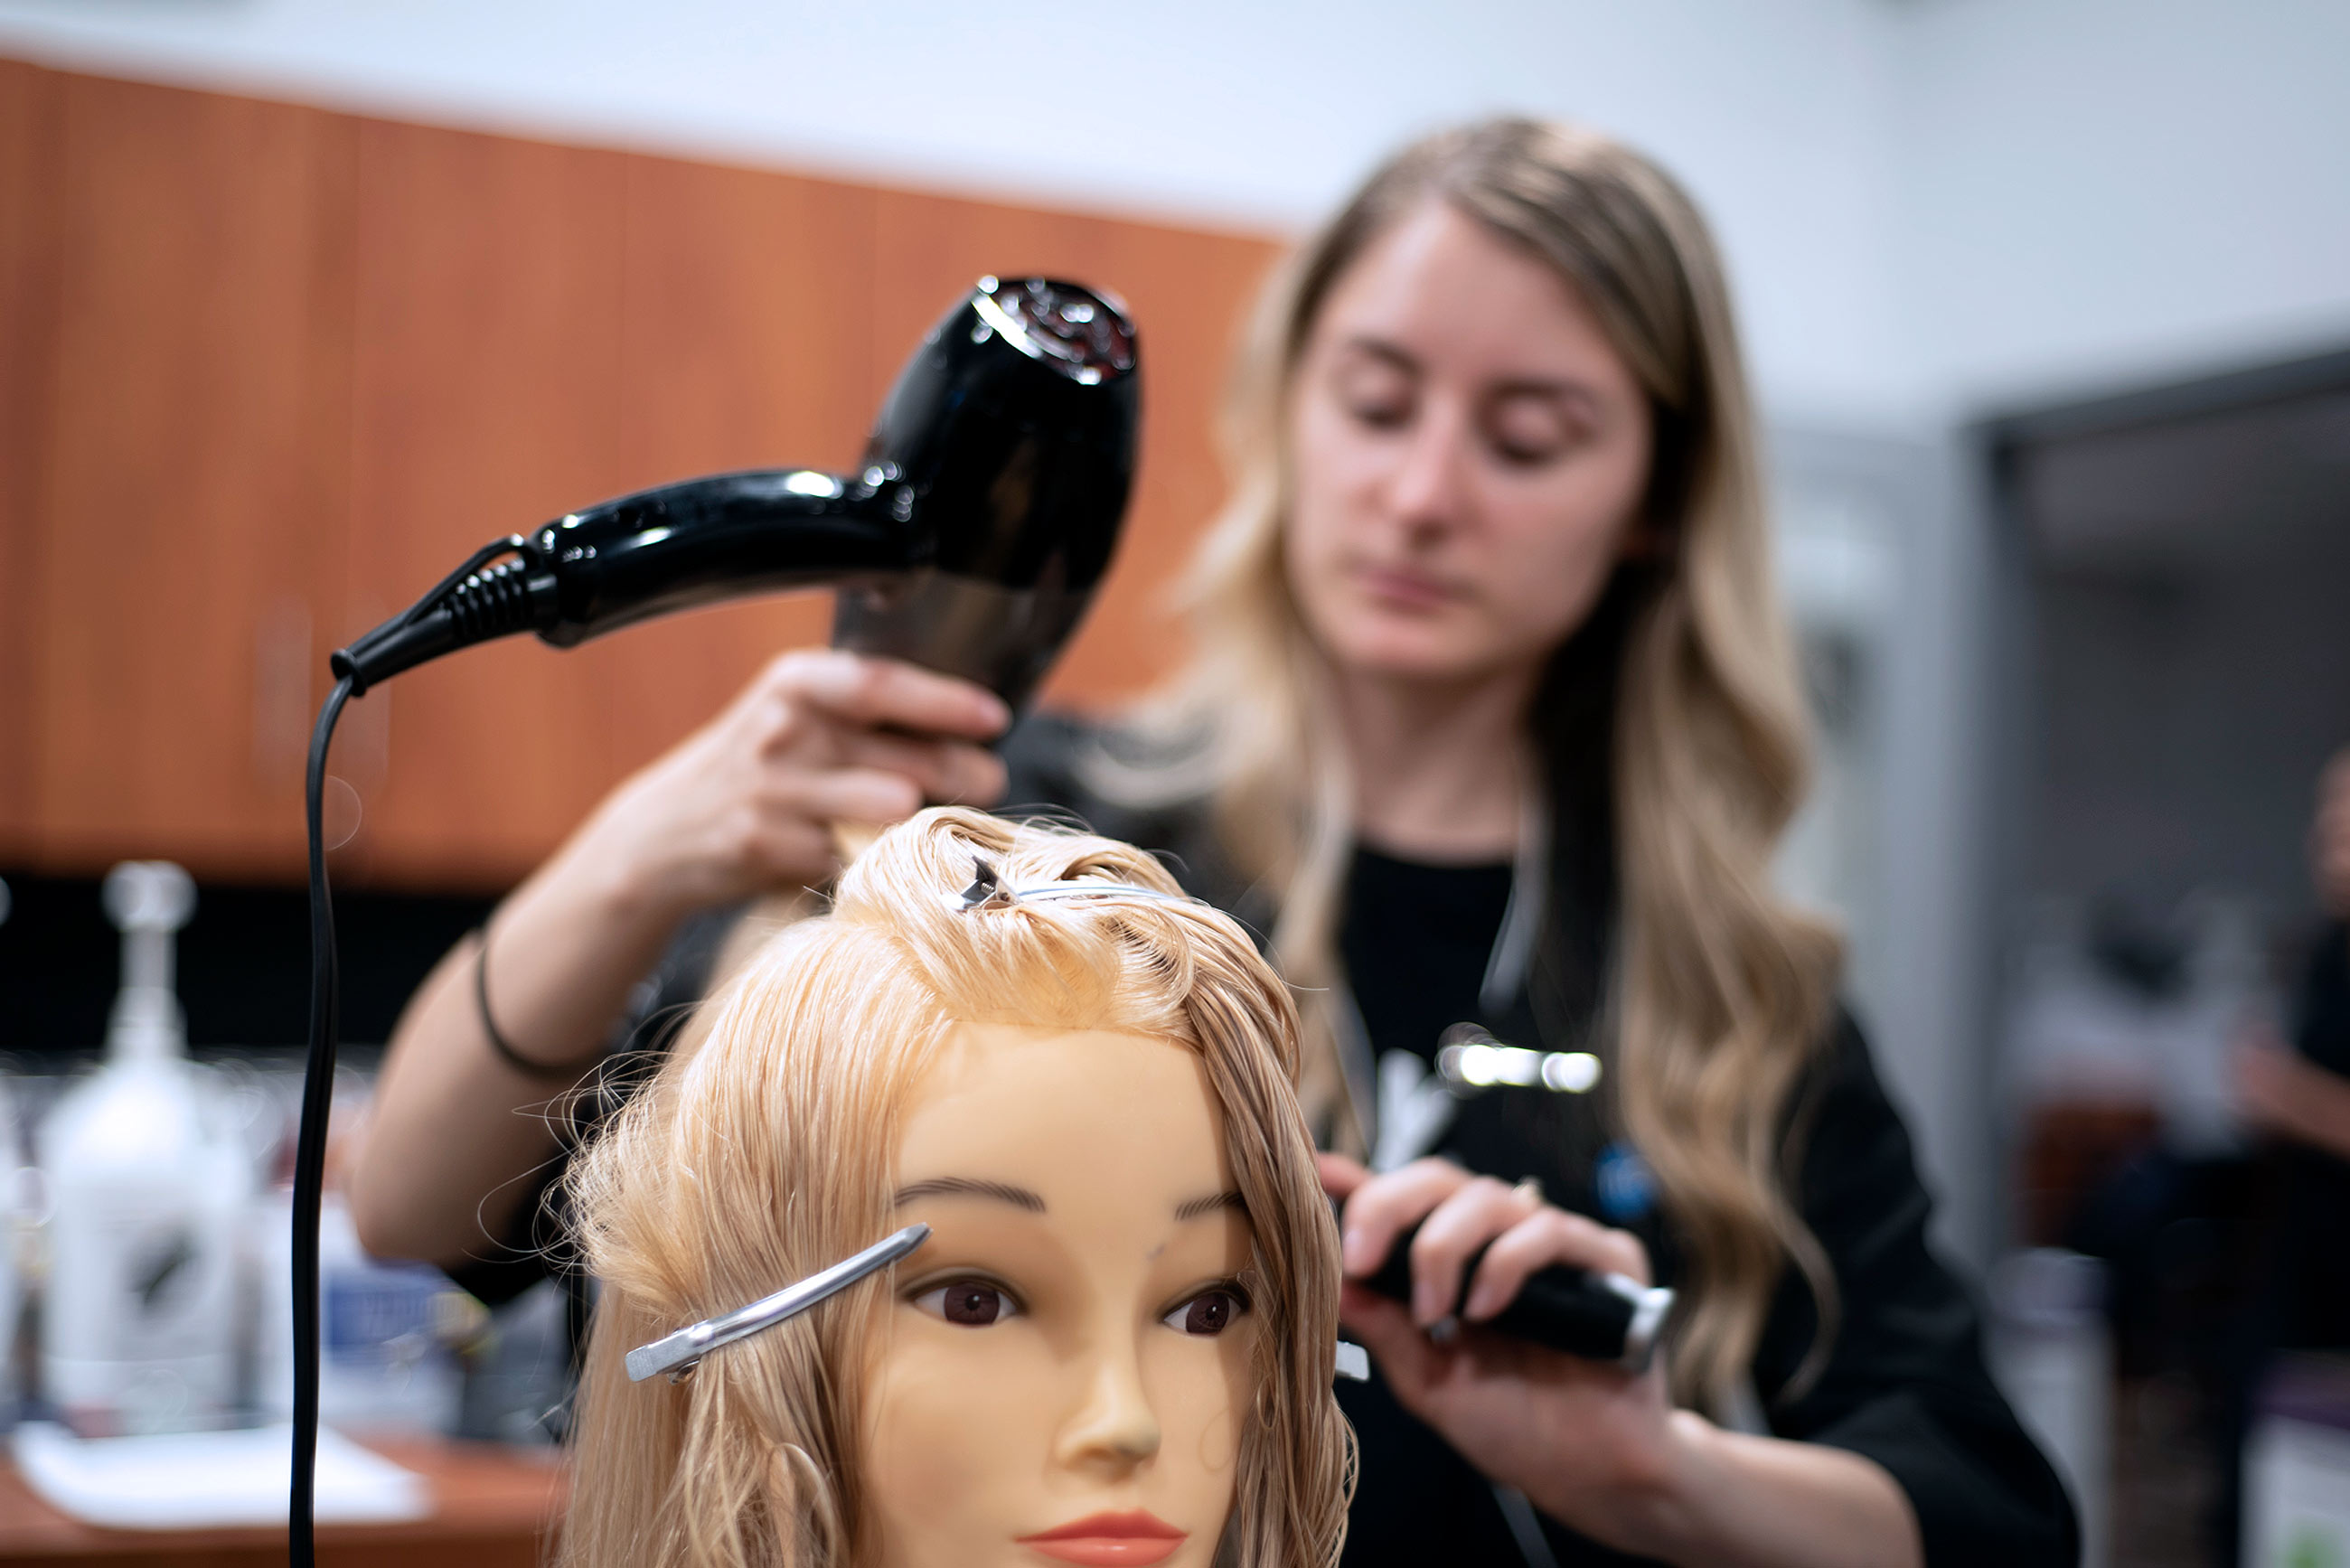 Hairstylist Apprenticeship Program  Niagara College